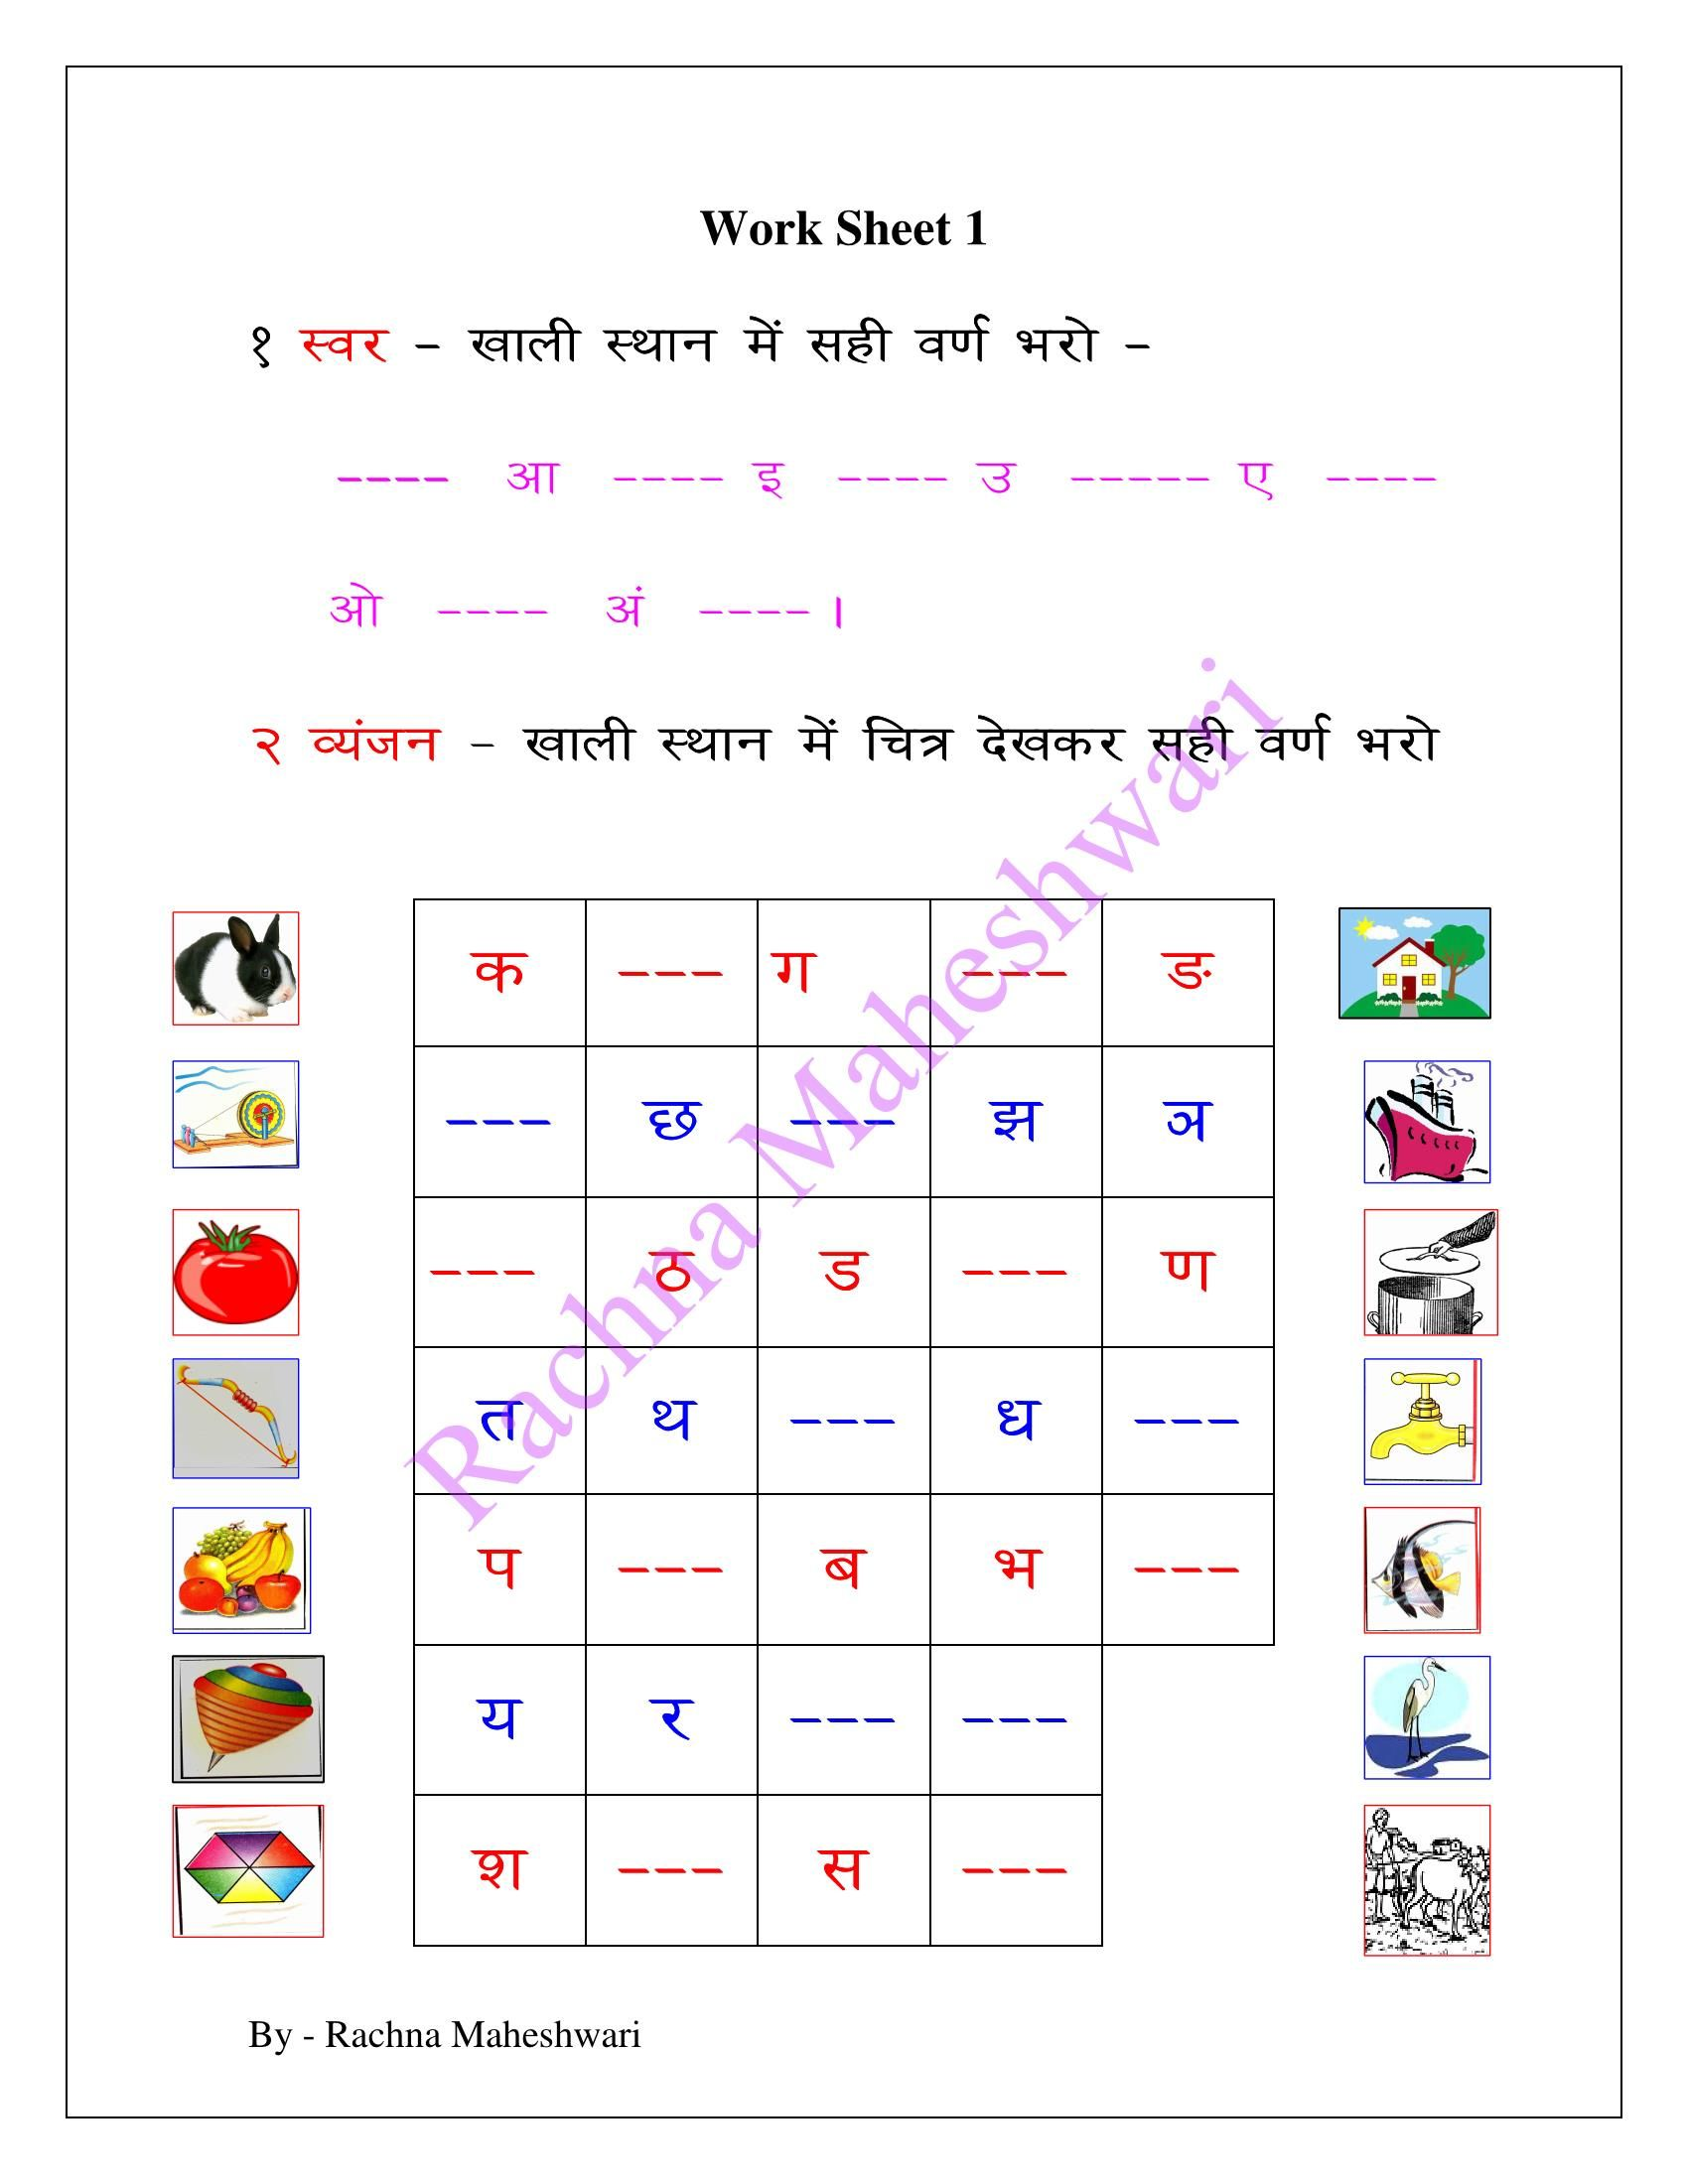 medium resolution of स्वर व्यंजन (6 Work Sheets- Easy to follow)   Hindi worksheets